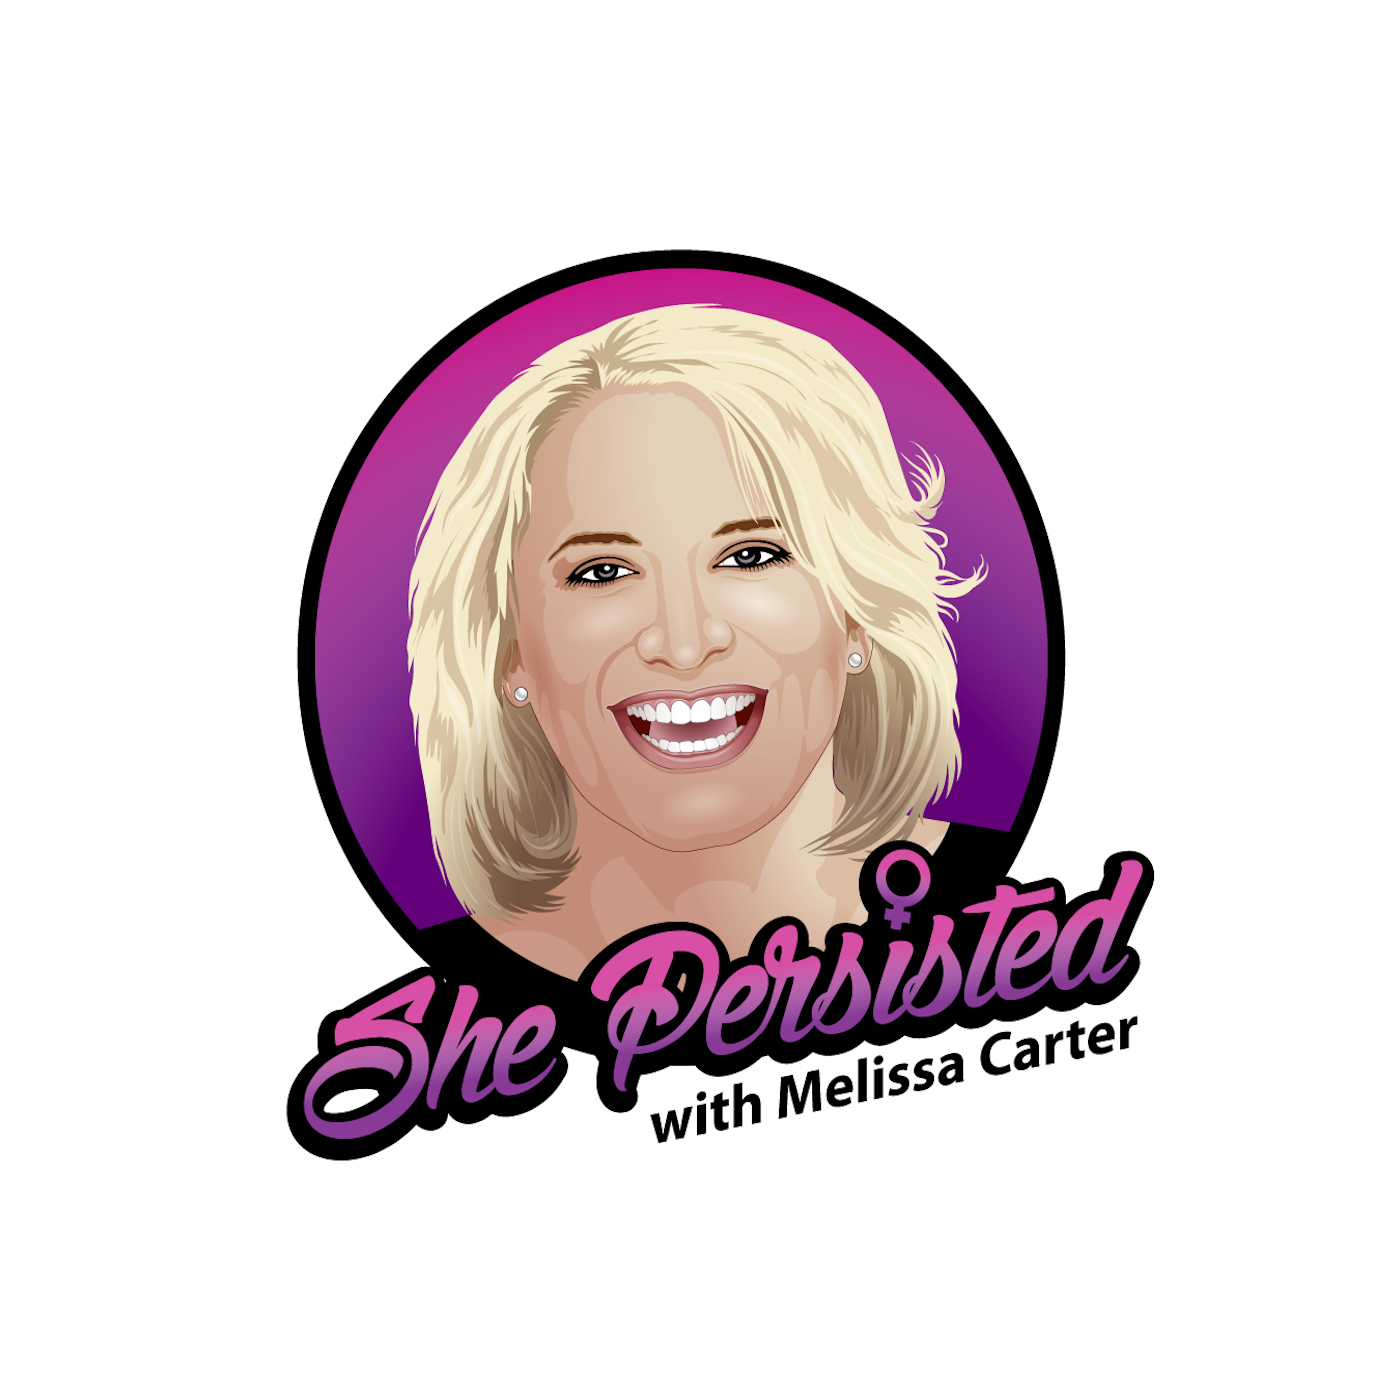 She Persisted with Melissa Carter 11-28-2017